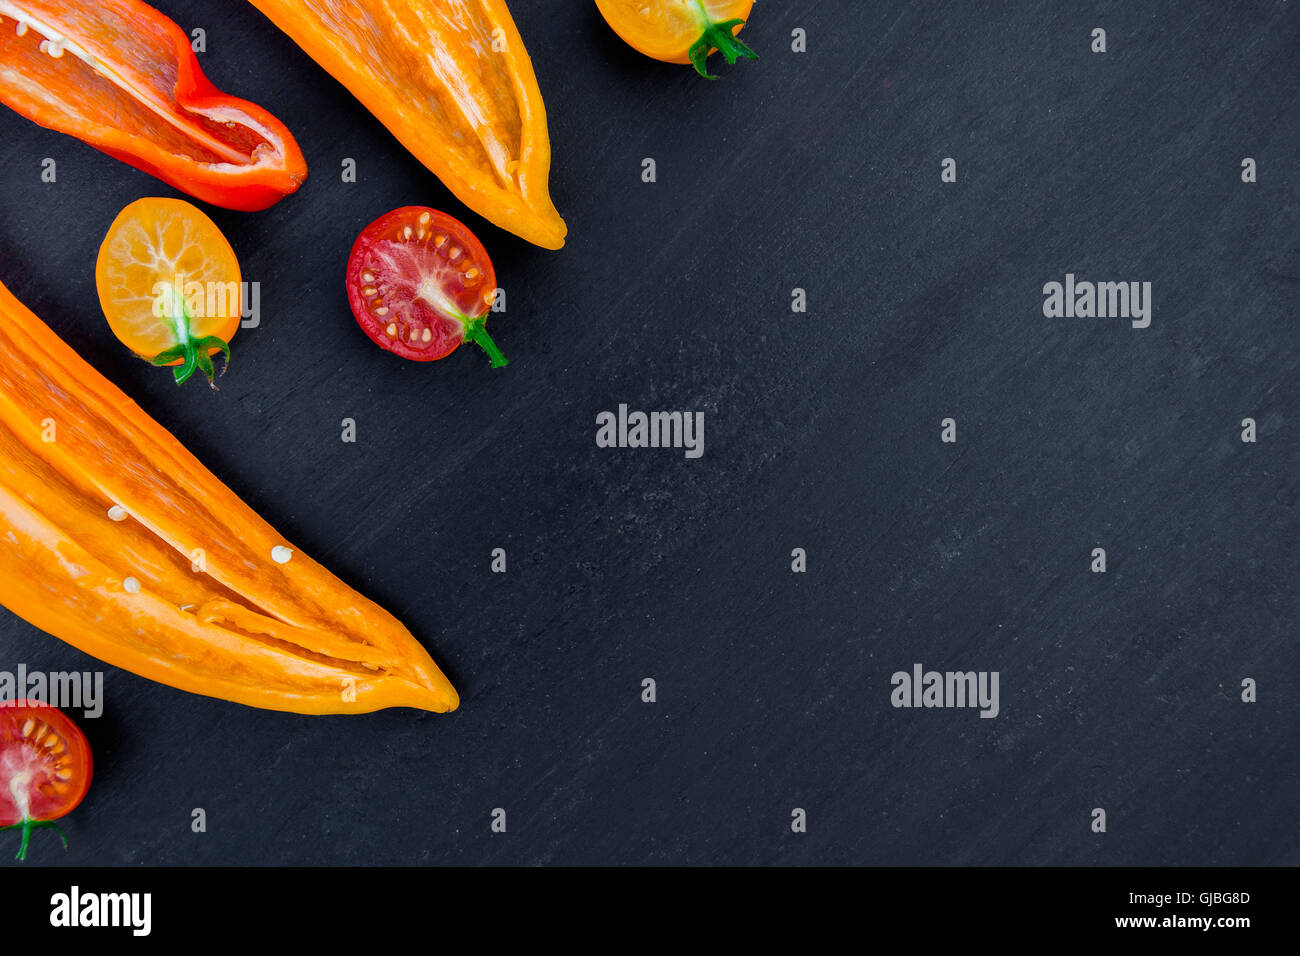 Mixed of half red and yellow pepper with a green branch near cherry tomato on a black backround. Top view. Frame. - Stock Image